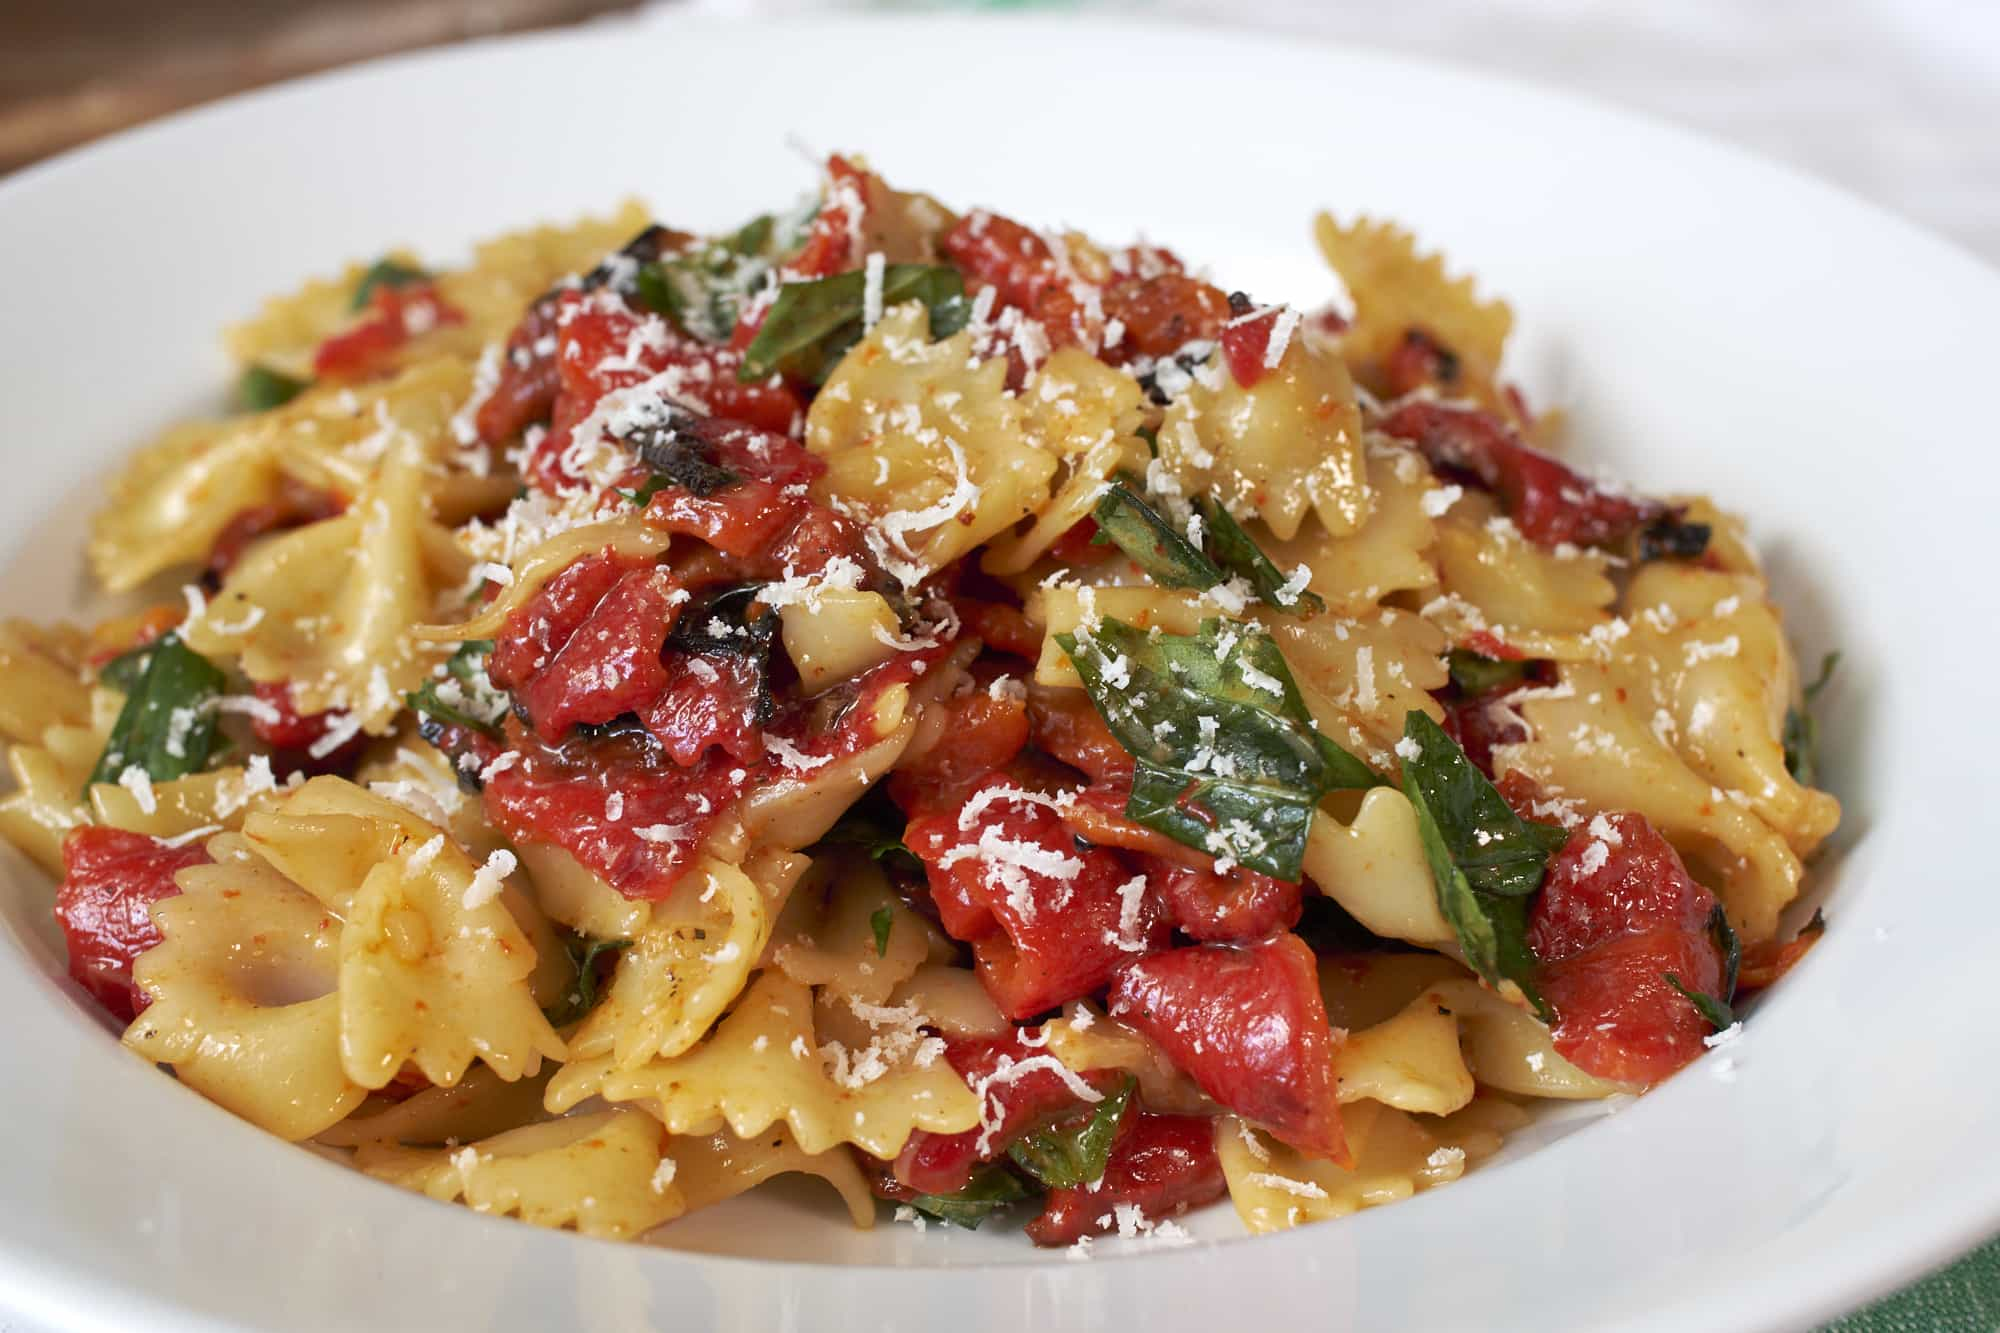 Bowtie Pasta with Roasted Red Pepper and Basil